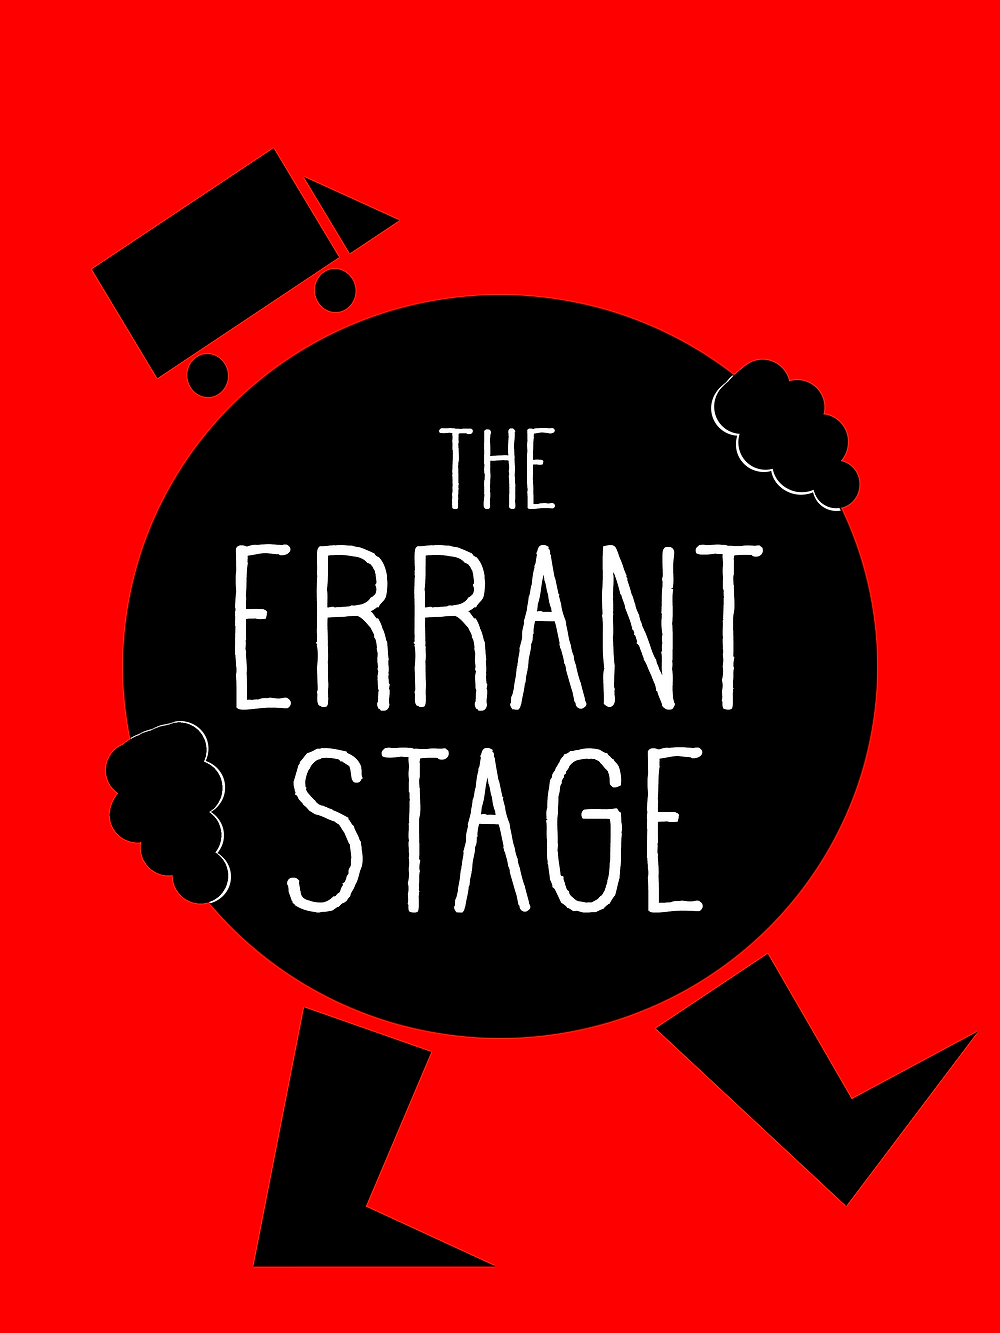 The Errant Stage logo on red background